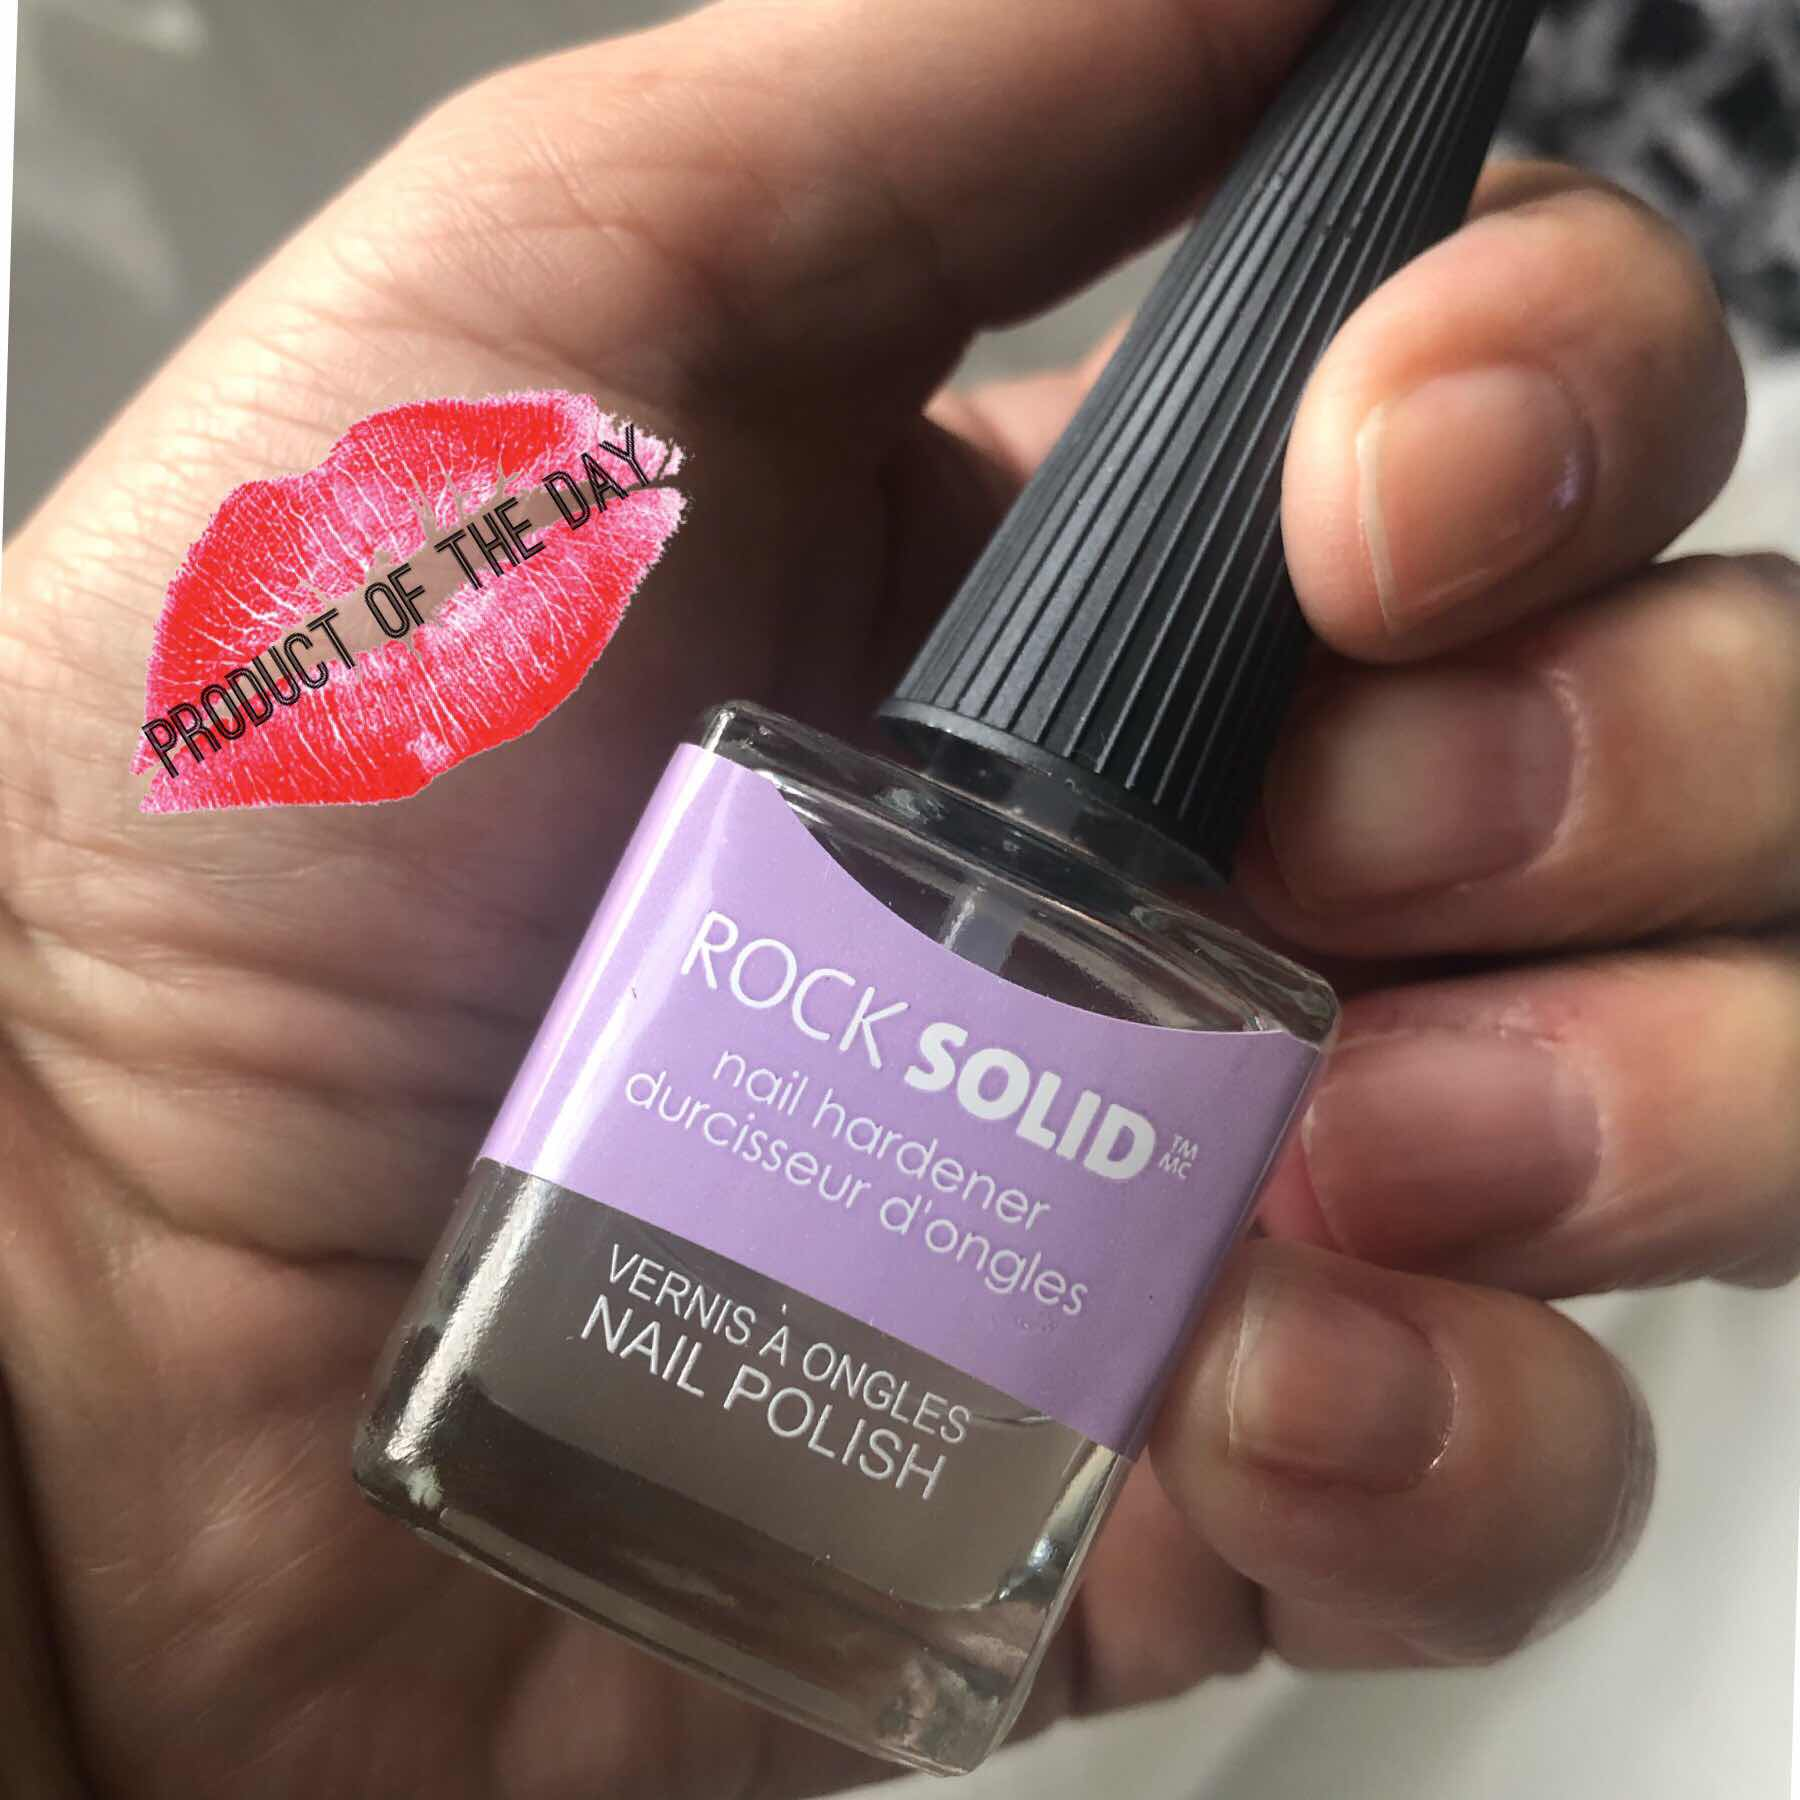 Witchcraft nail hardener, thebeautyblog.ca